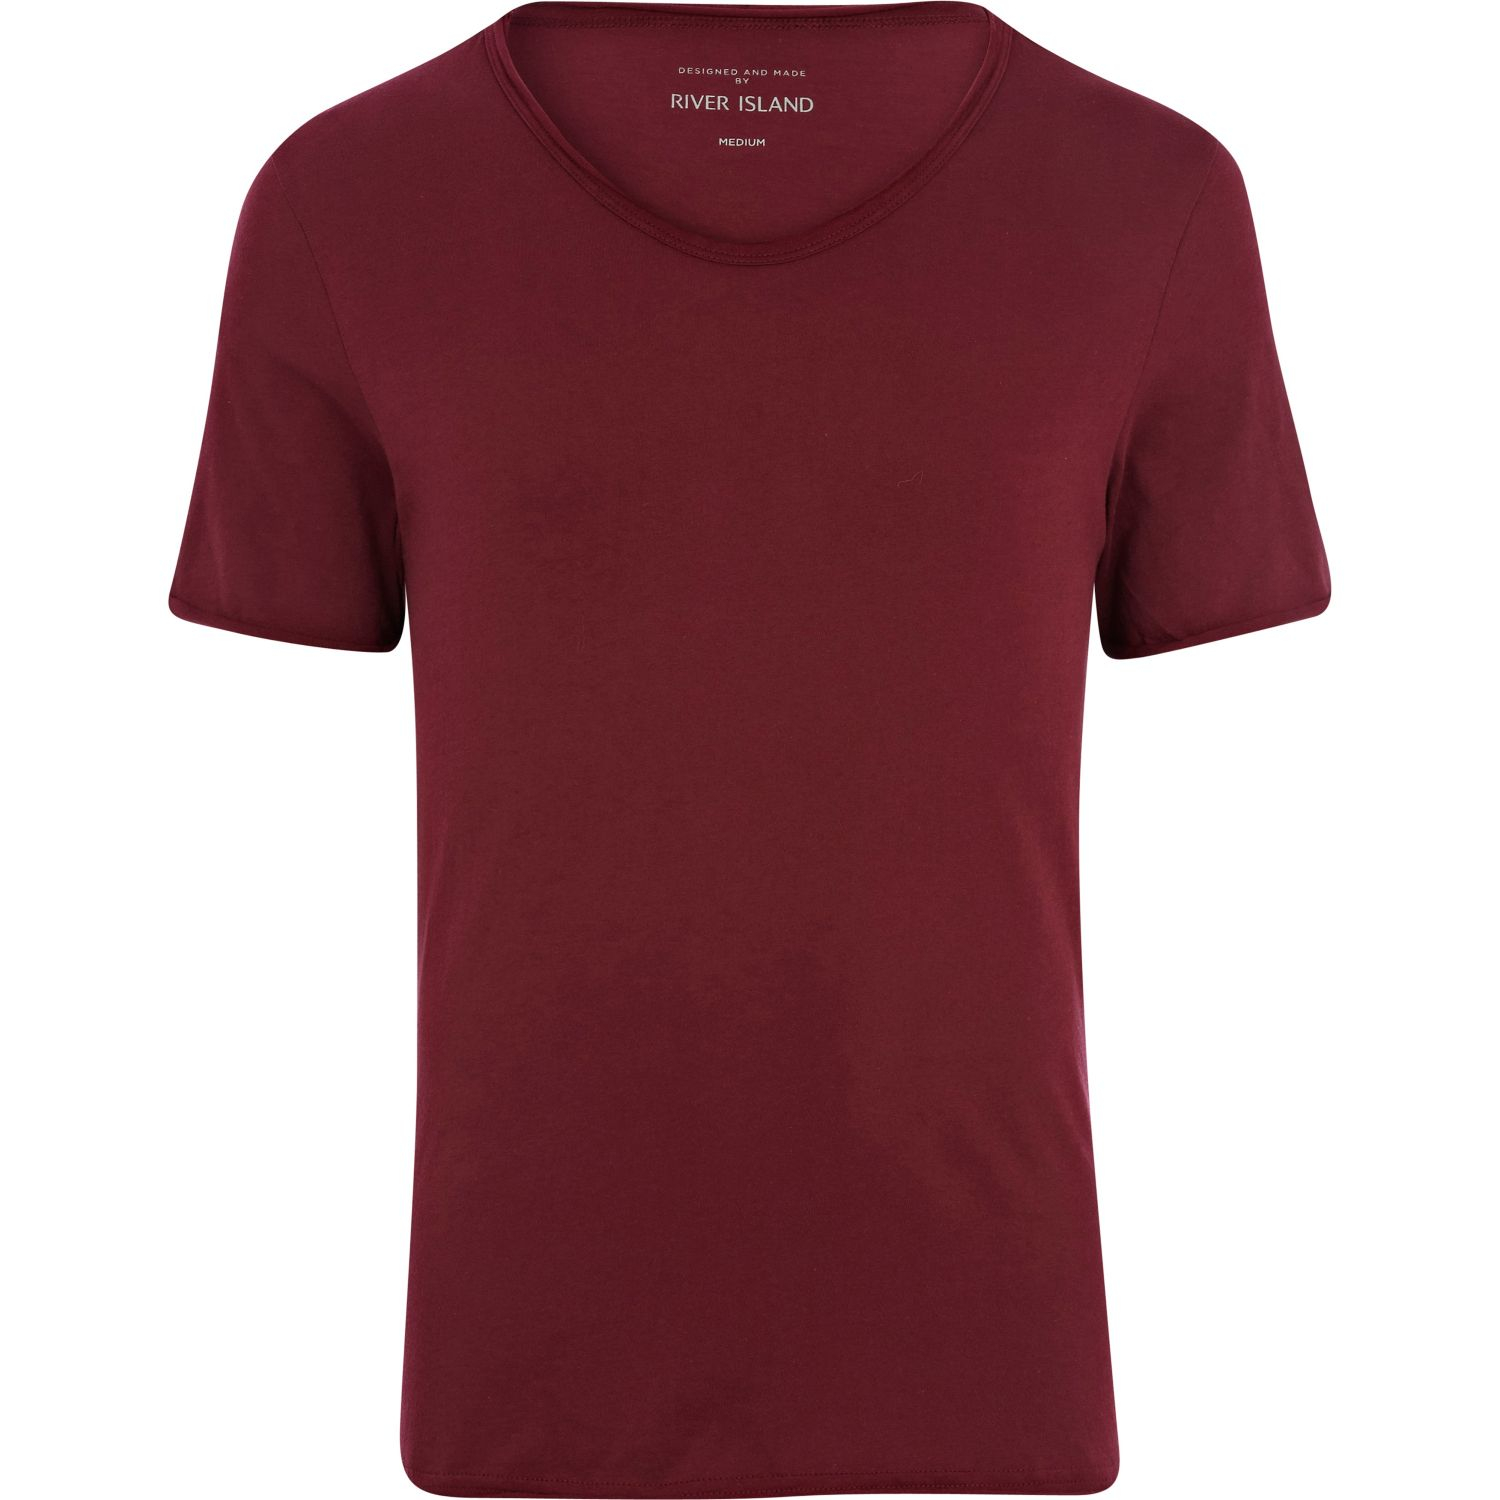 river island low scoop neck t shirt in red for men lyst